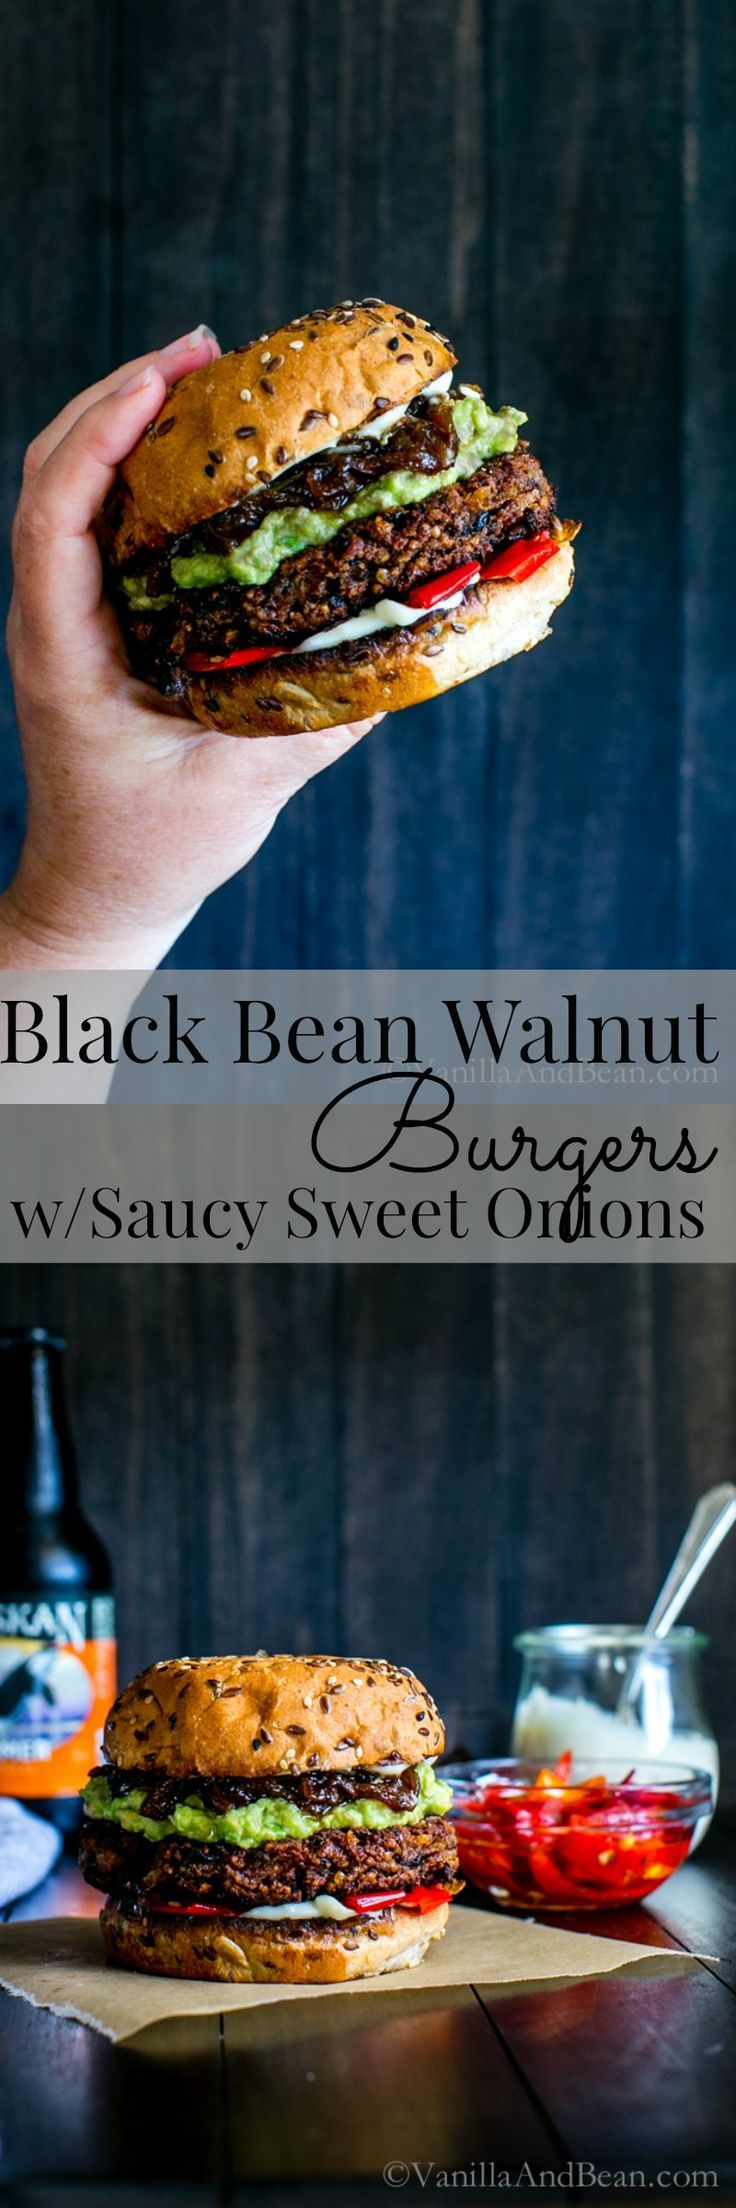 Packed with texture, flavor and those boozy saucy sweet onions - oh my! HELLO Summer!   Vegan + GF  